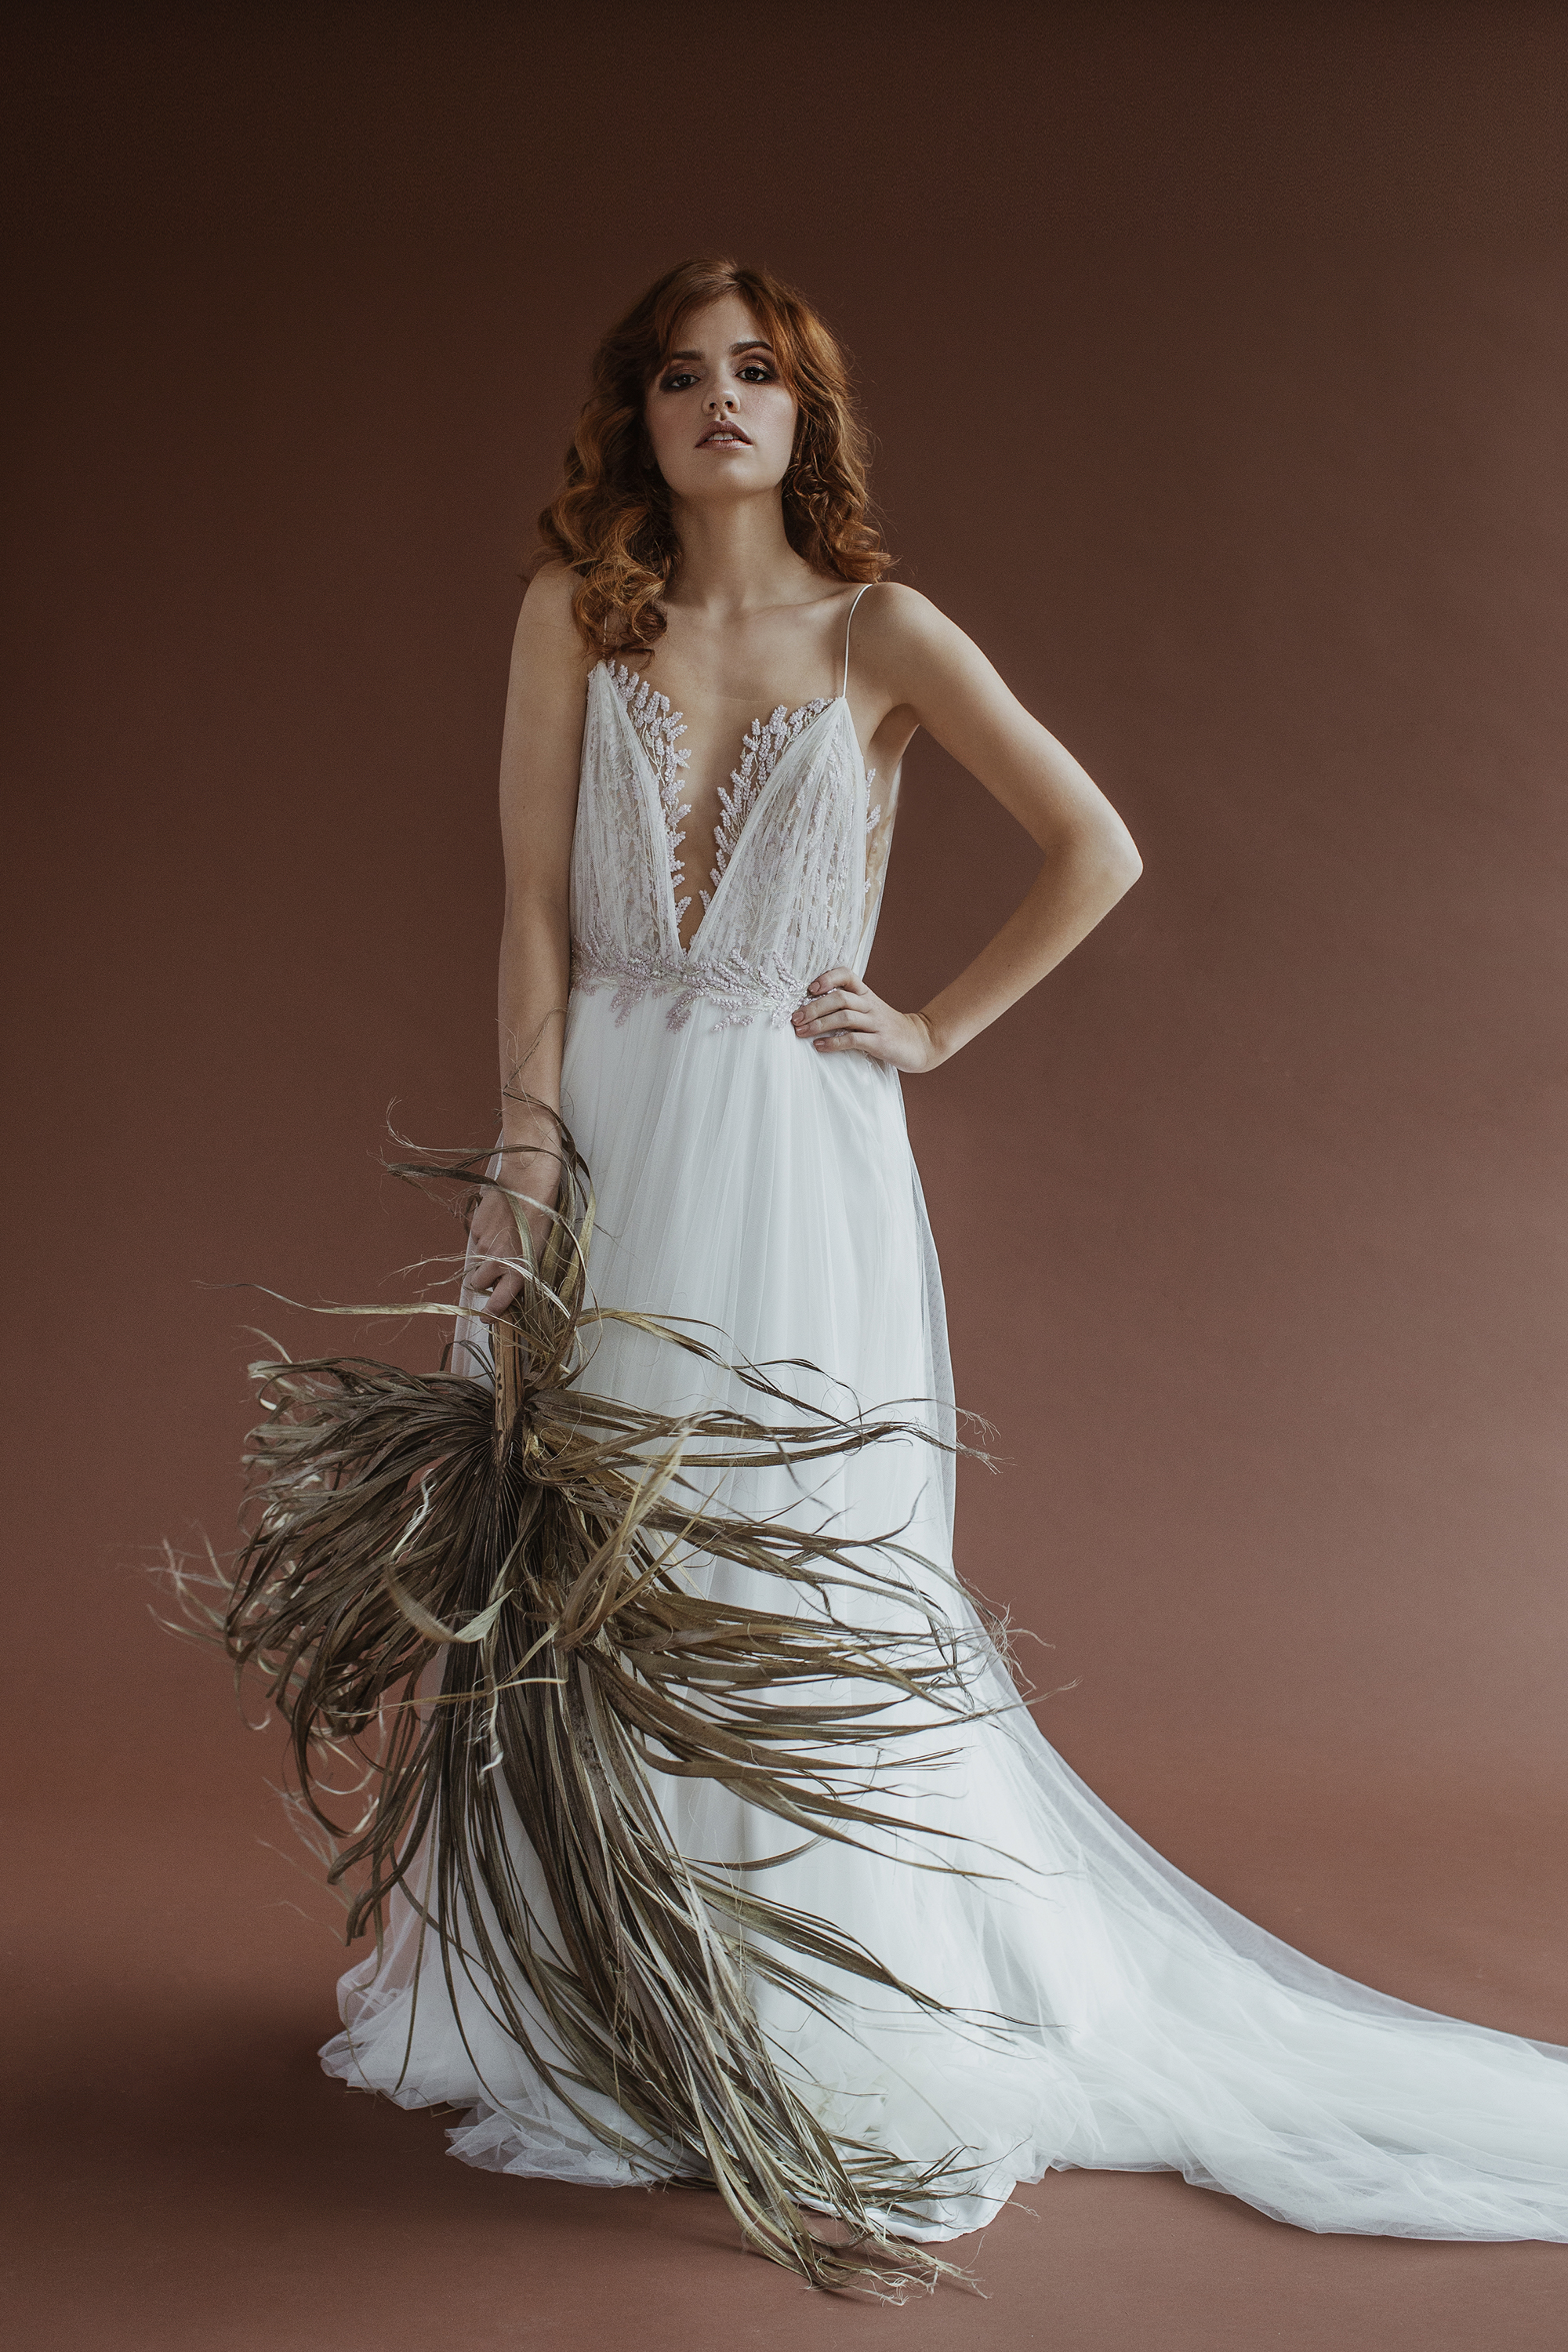 Heather gown from Anna Kara in the studio